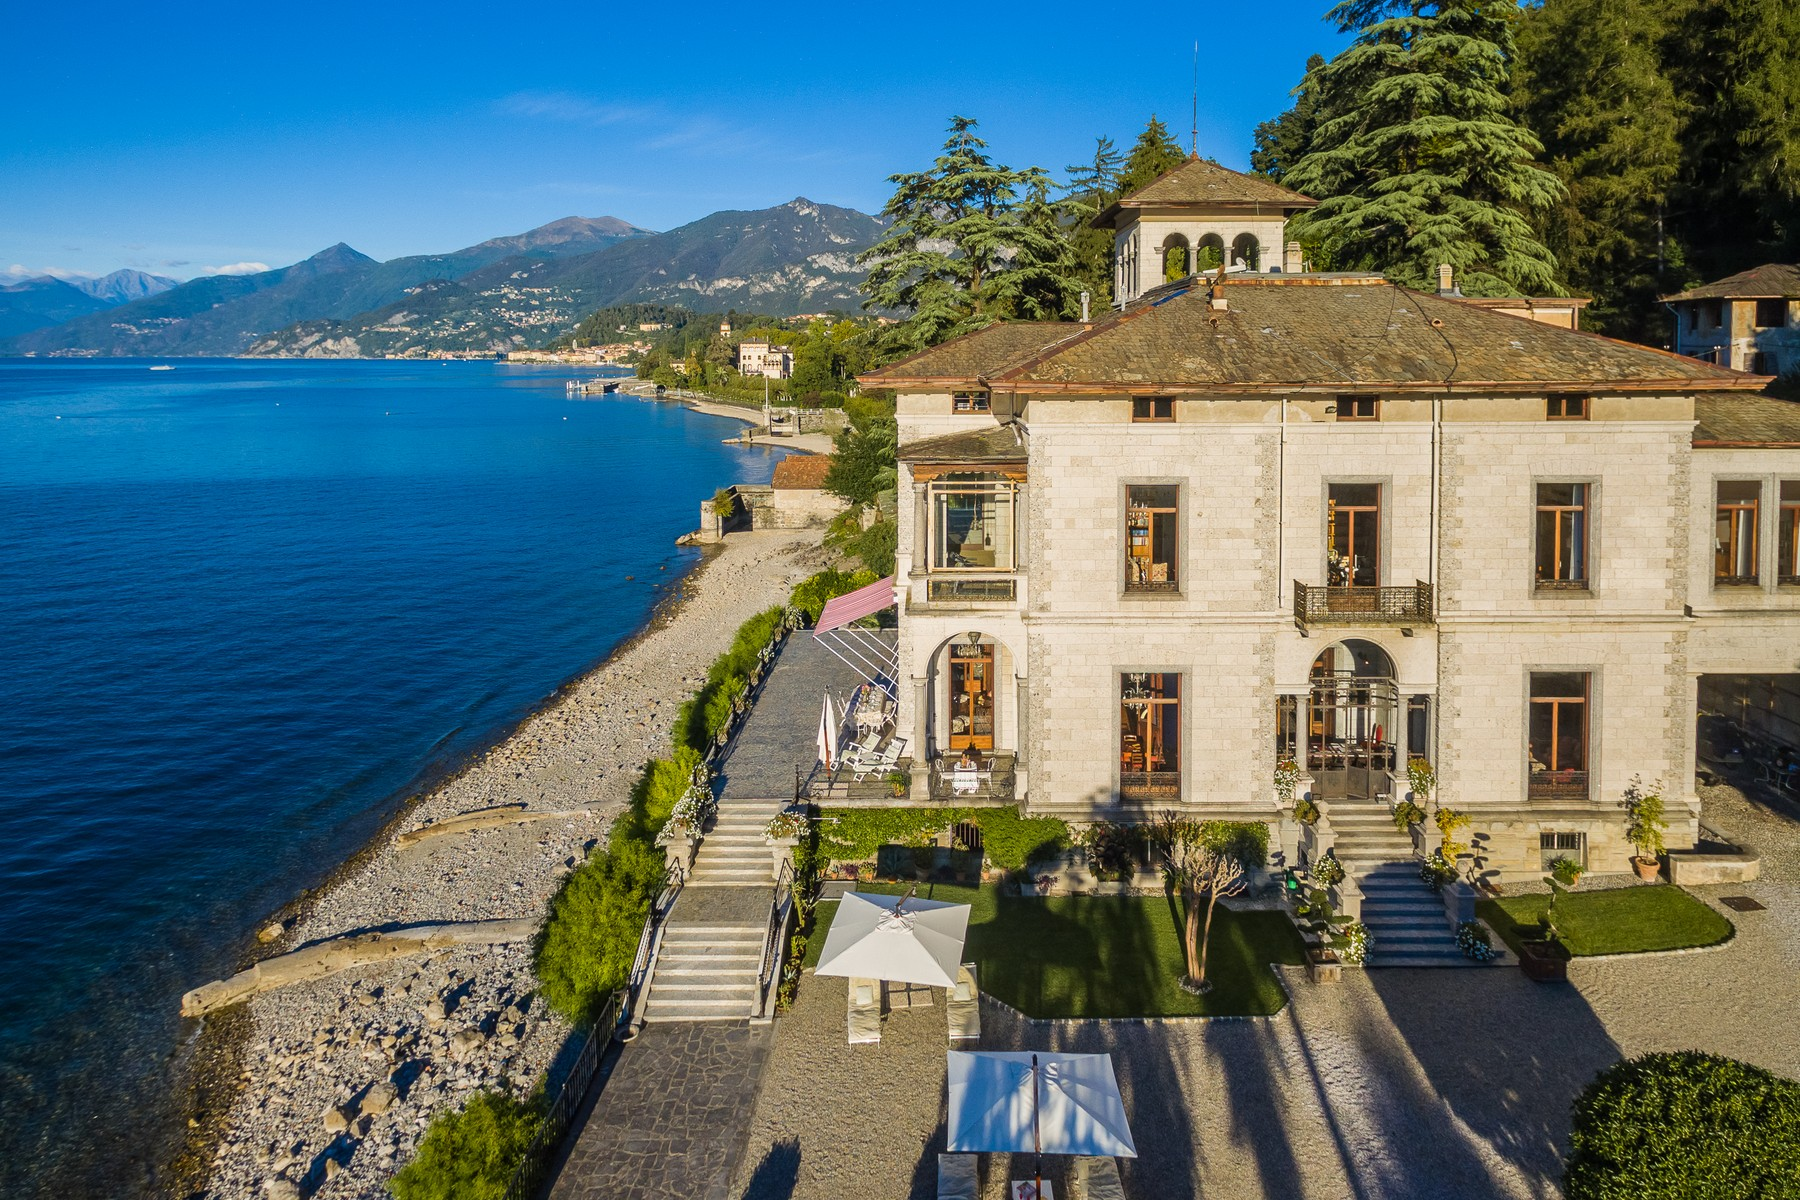 Magnificent villa Liberty pieds dans l'eau on Lake Como